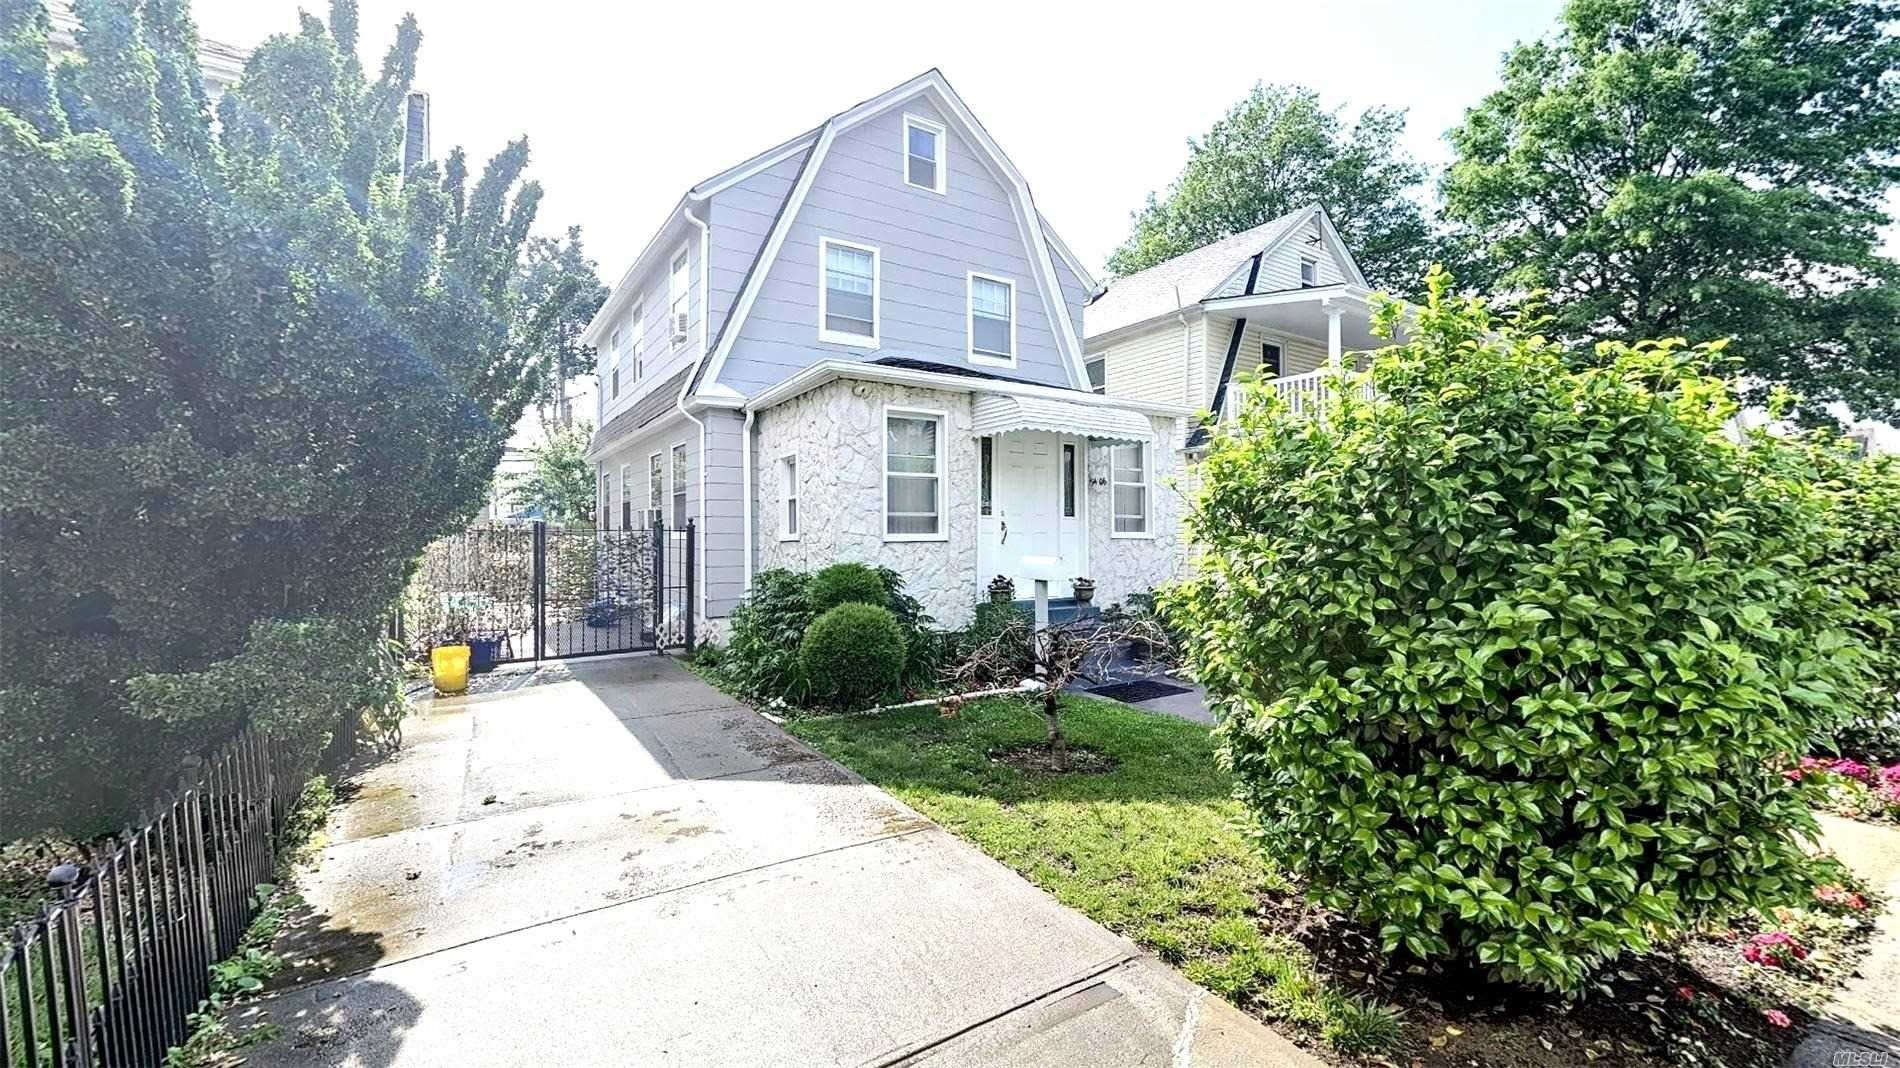 94-06 215th Street, Queens Village, NY 11428 - MLS#: 3202689